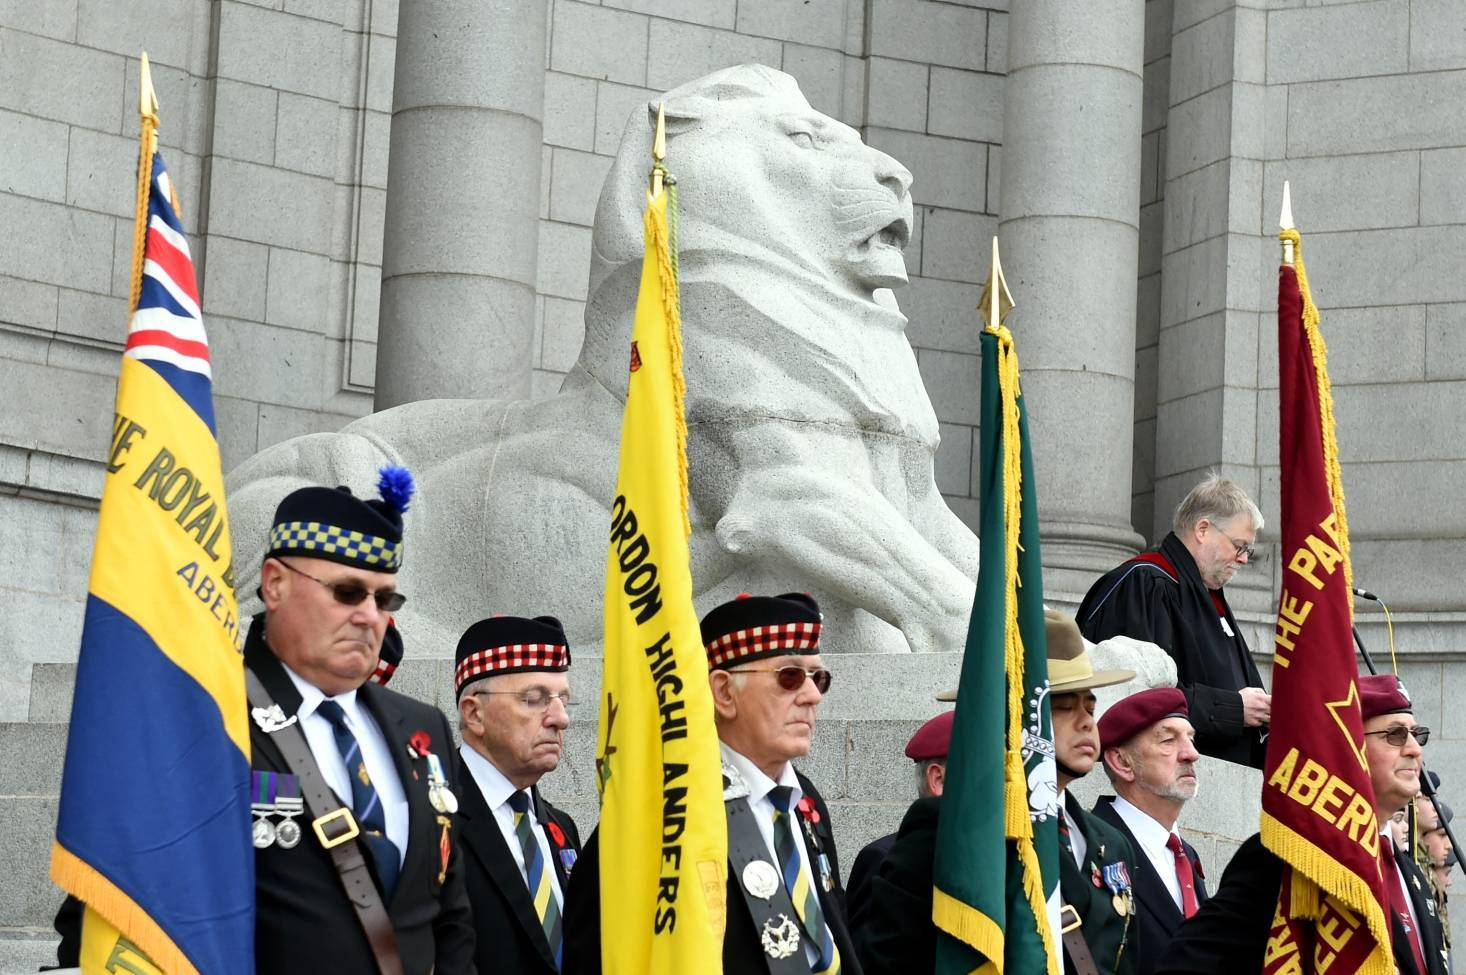 Remembrance Sunday Parade and Service at the Aberdeen War Memorial, Cowdray Hall, Aberdeen.